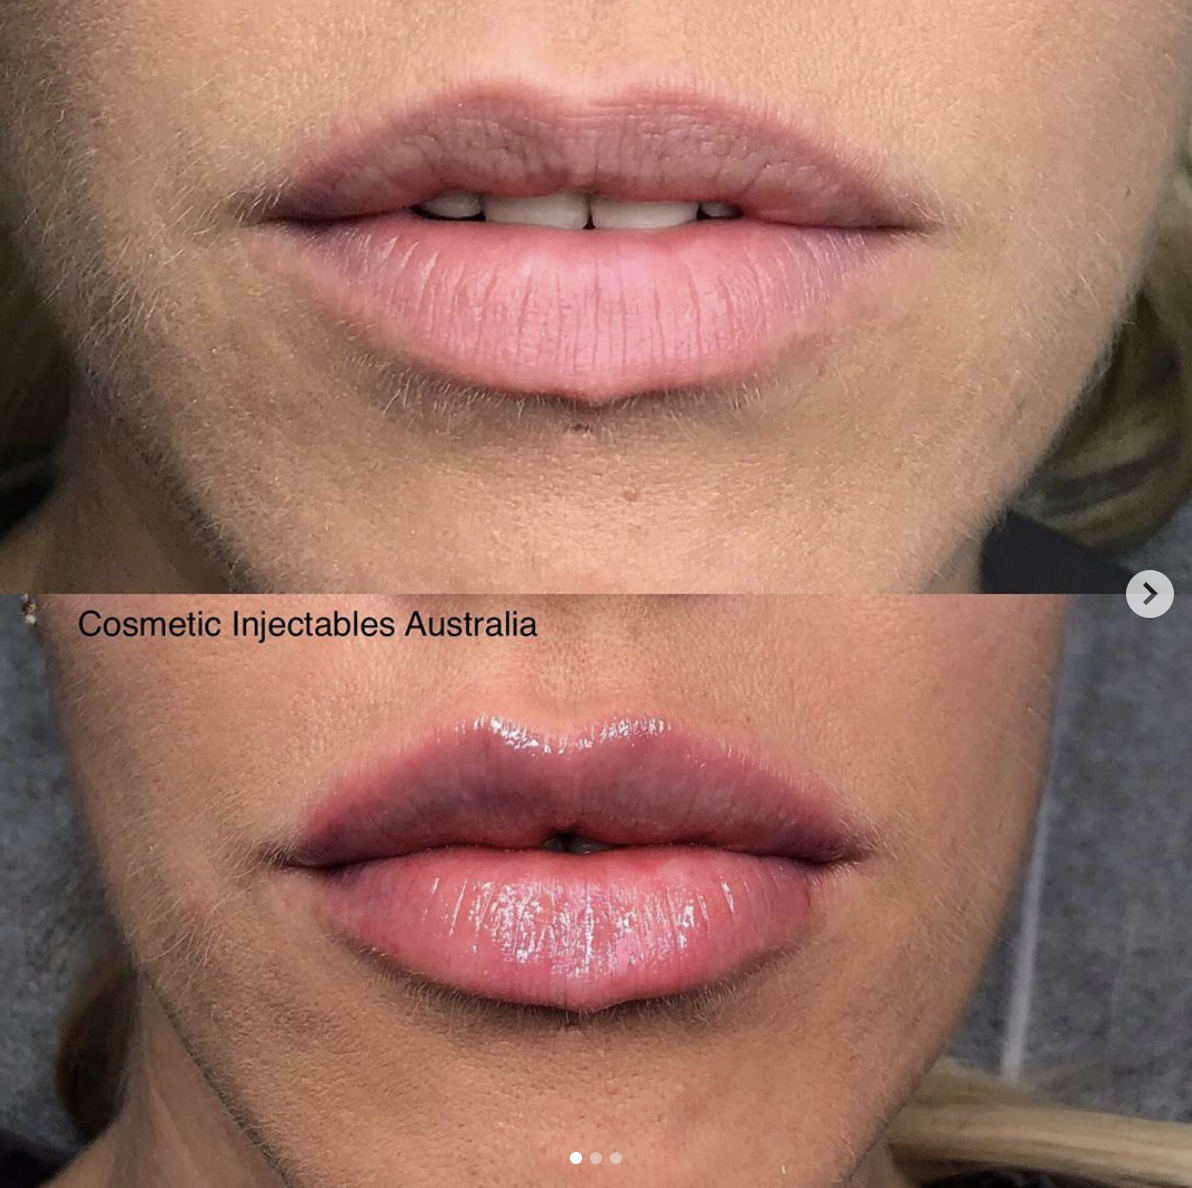 COSMETIC INJECTABLES - Cosmetics